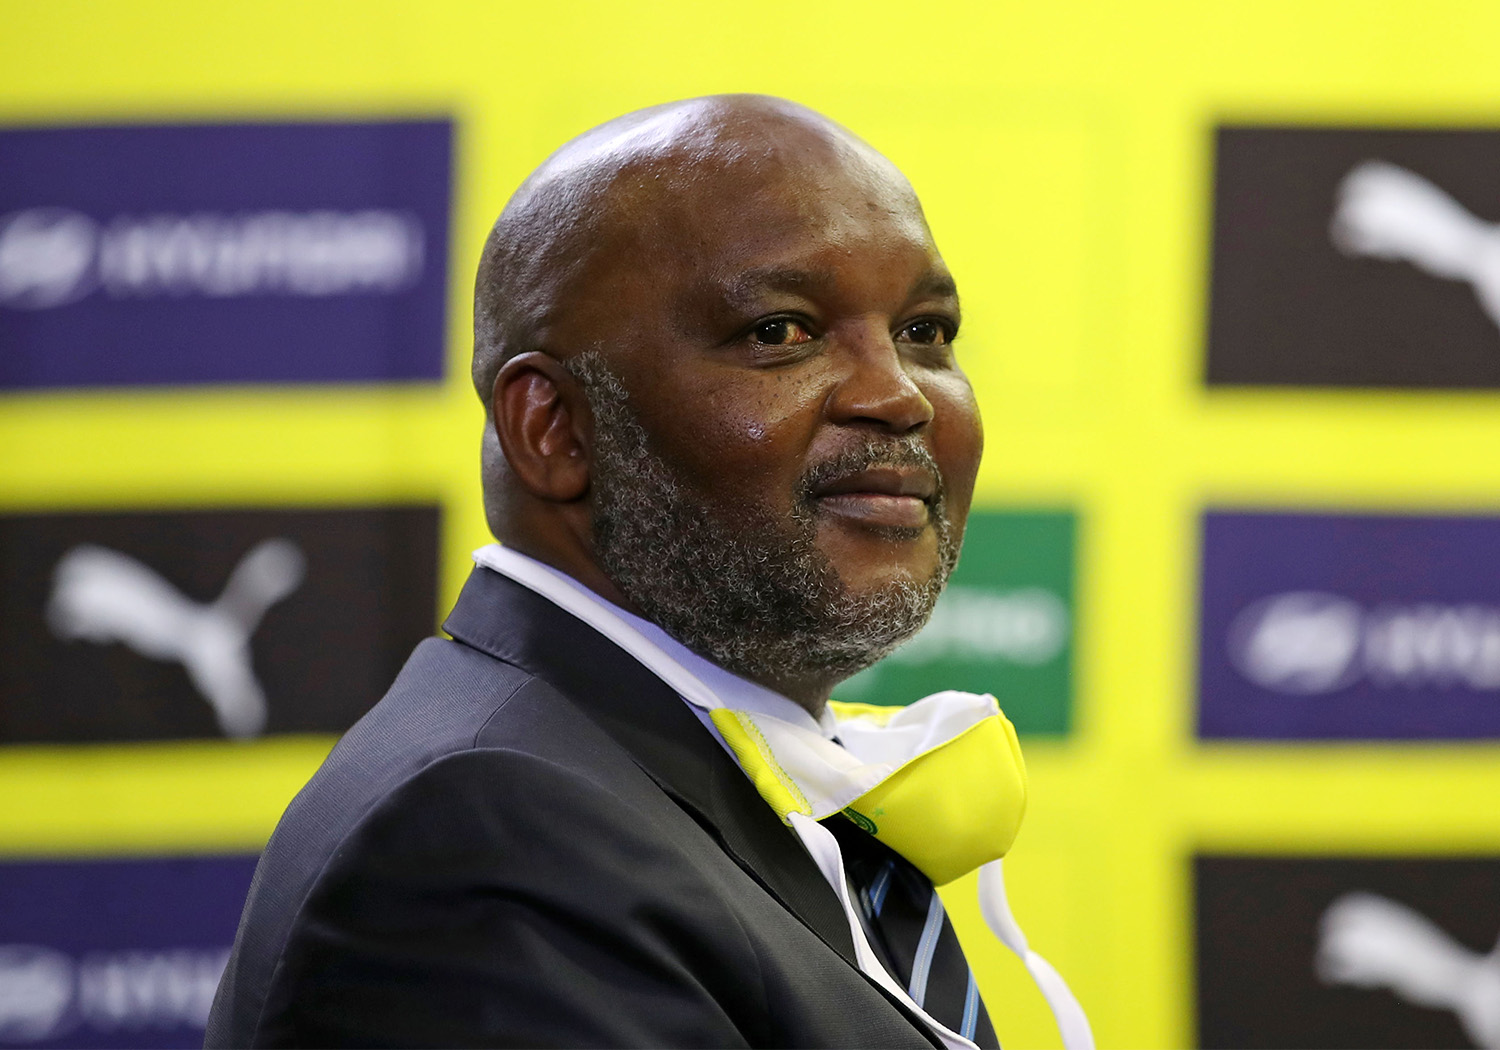 Kaizer Chiefs missed a chance to sign Pitso Mosimane